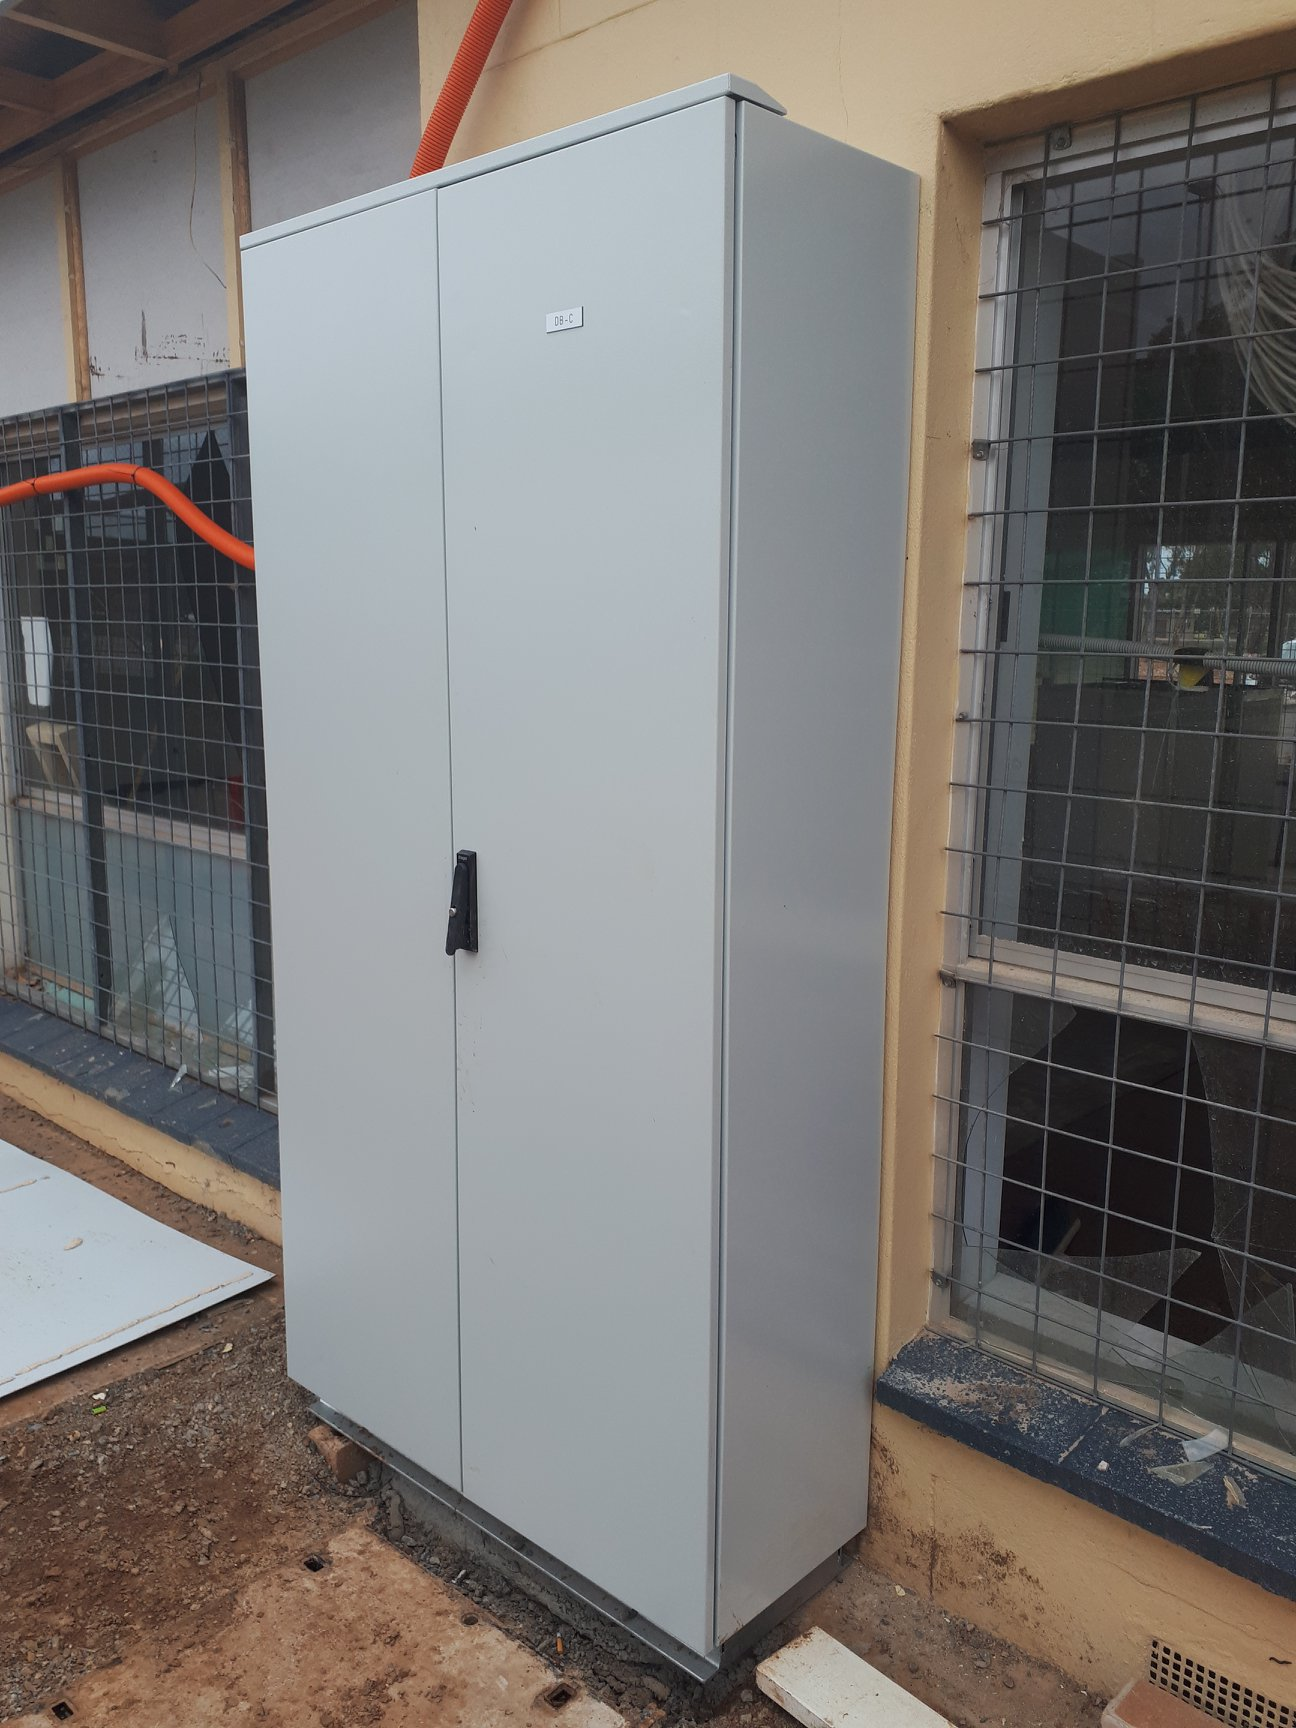 181201 New electrical junction box